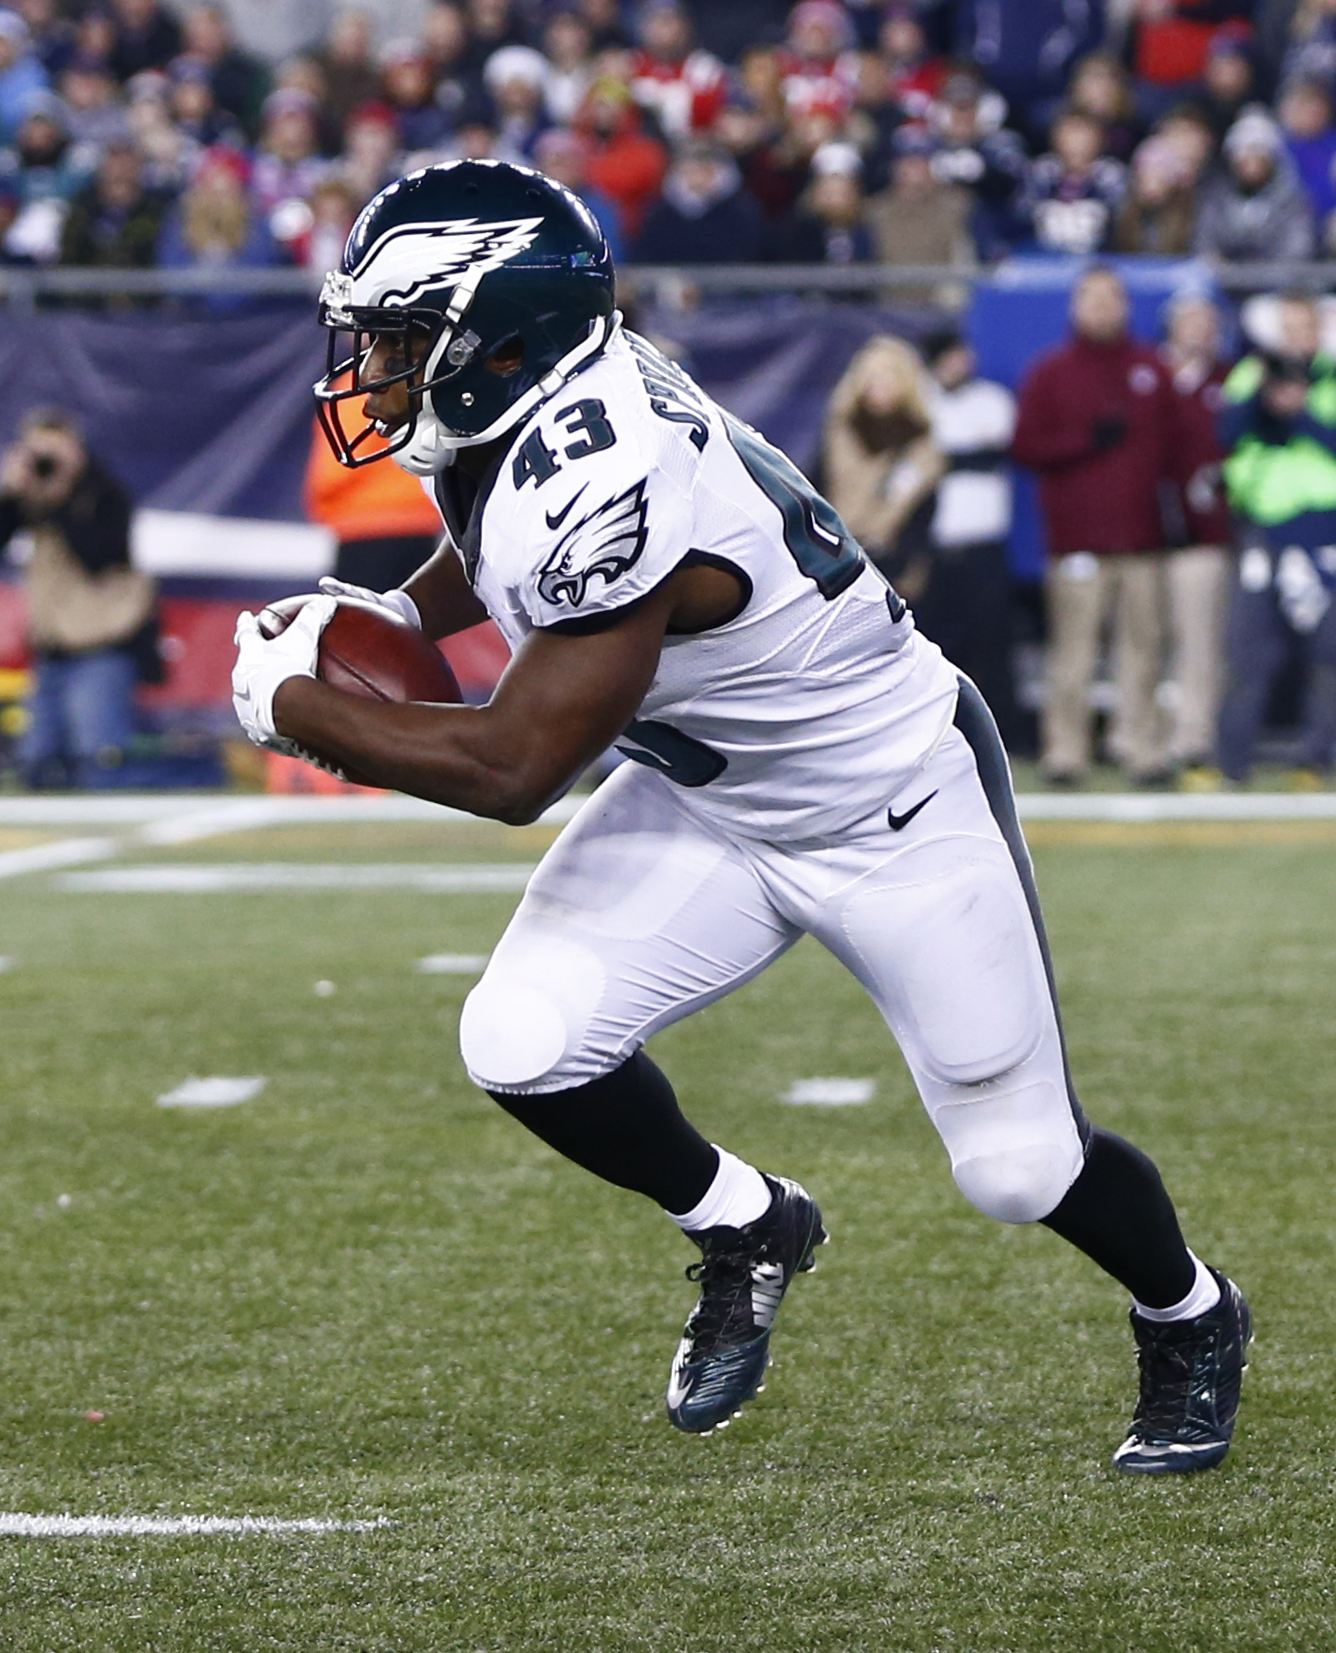 ecc7eedecef During an appearance on 97.5 The Fanatic, ESPN's Adam Schefter said Sproles  would be willing to wait for the right offer, even if it comes during the  latter ...